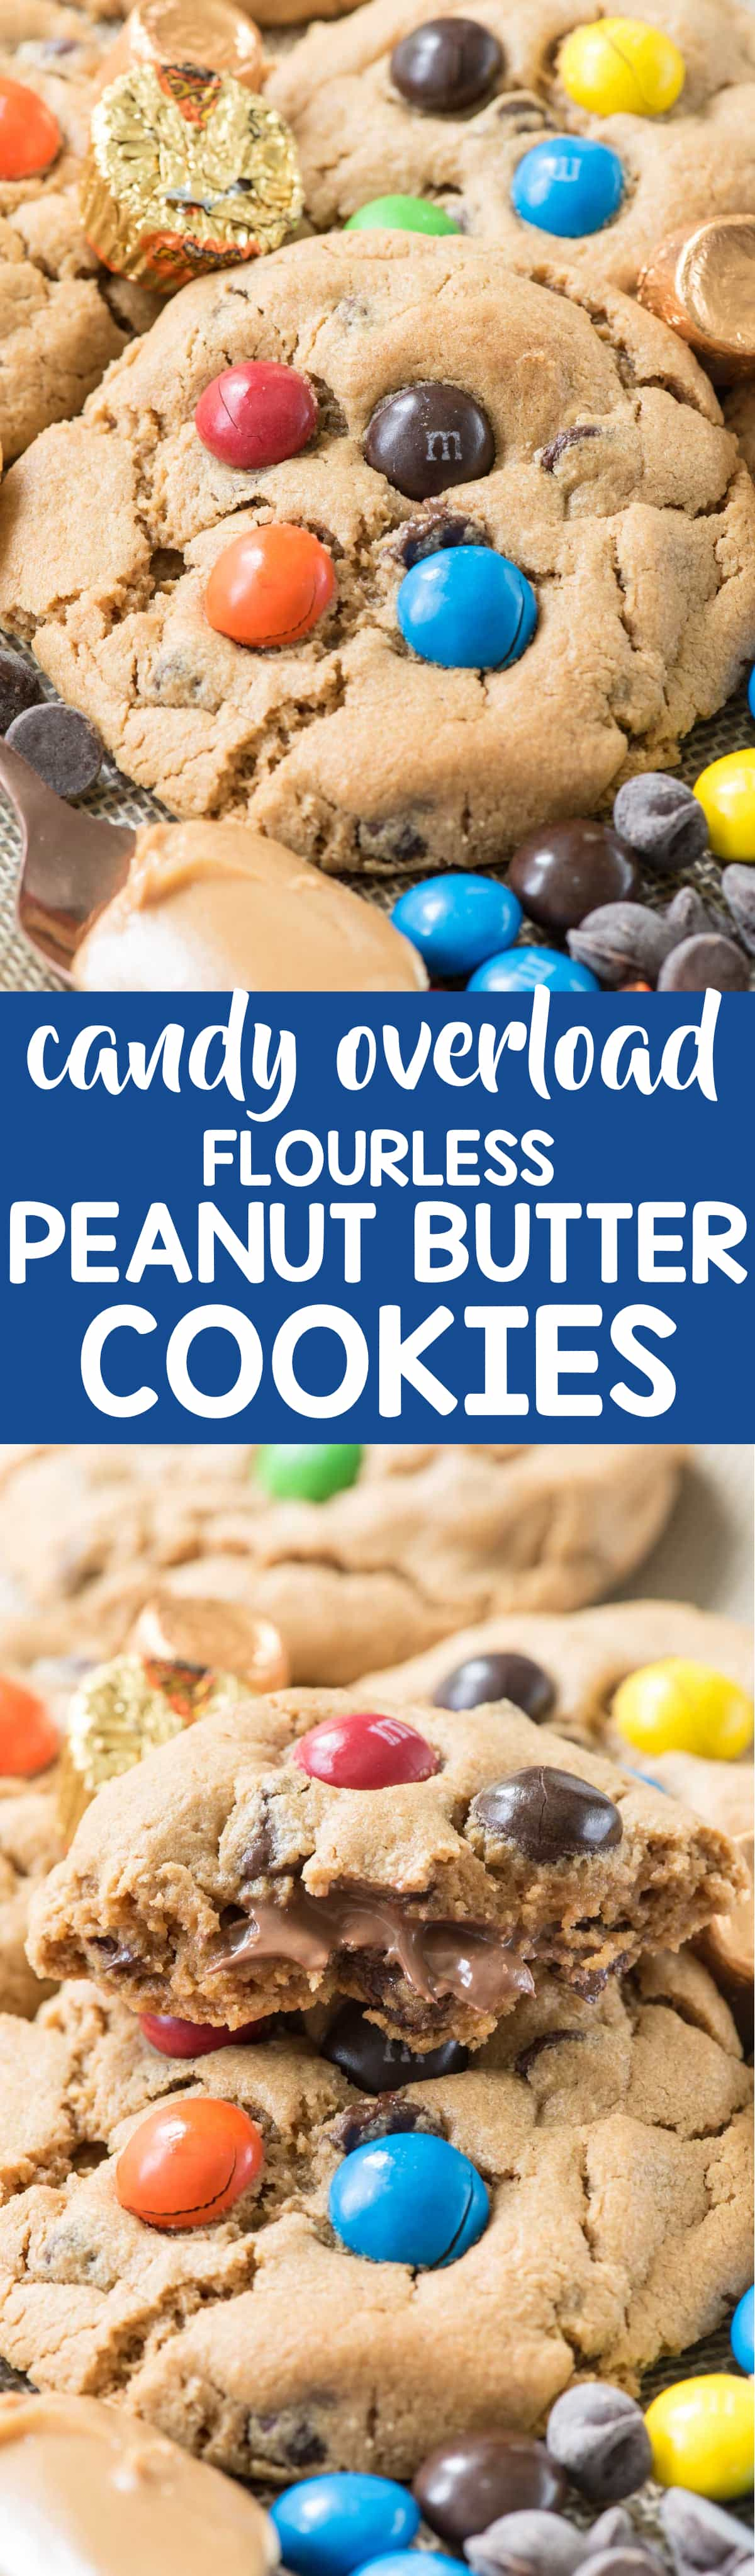 Candy Overload Flourless Peanut Butter Cookies - easy peanut butter cookies with no flour or butter! It's the best peanut butter cookie recipe and they're stuffed with peanut butter cups.